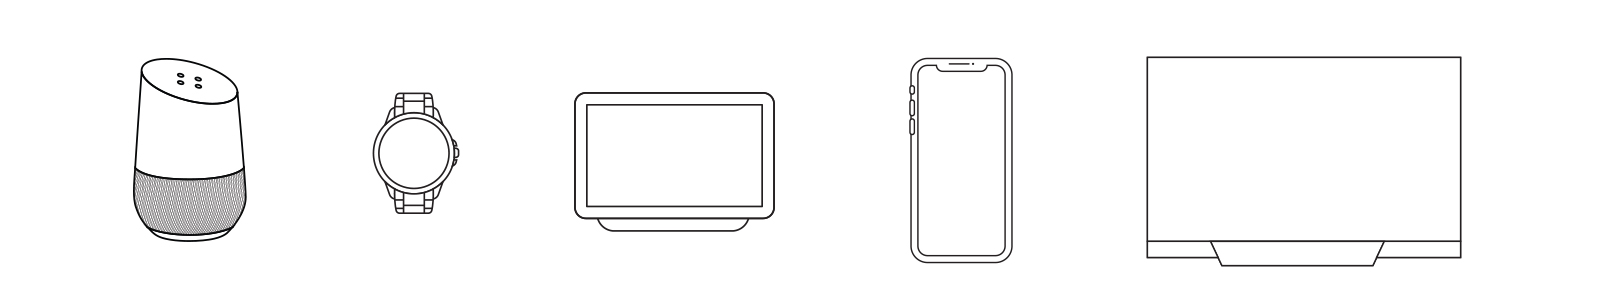 Line drawings of a Google Home device, smart watch, Google Home display, mobile device and a TV.